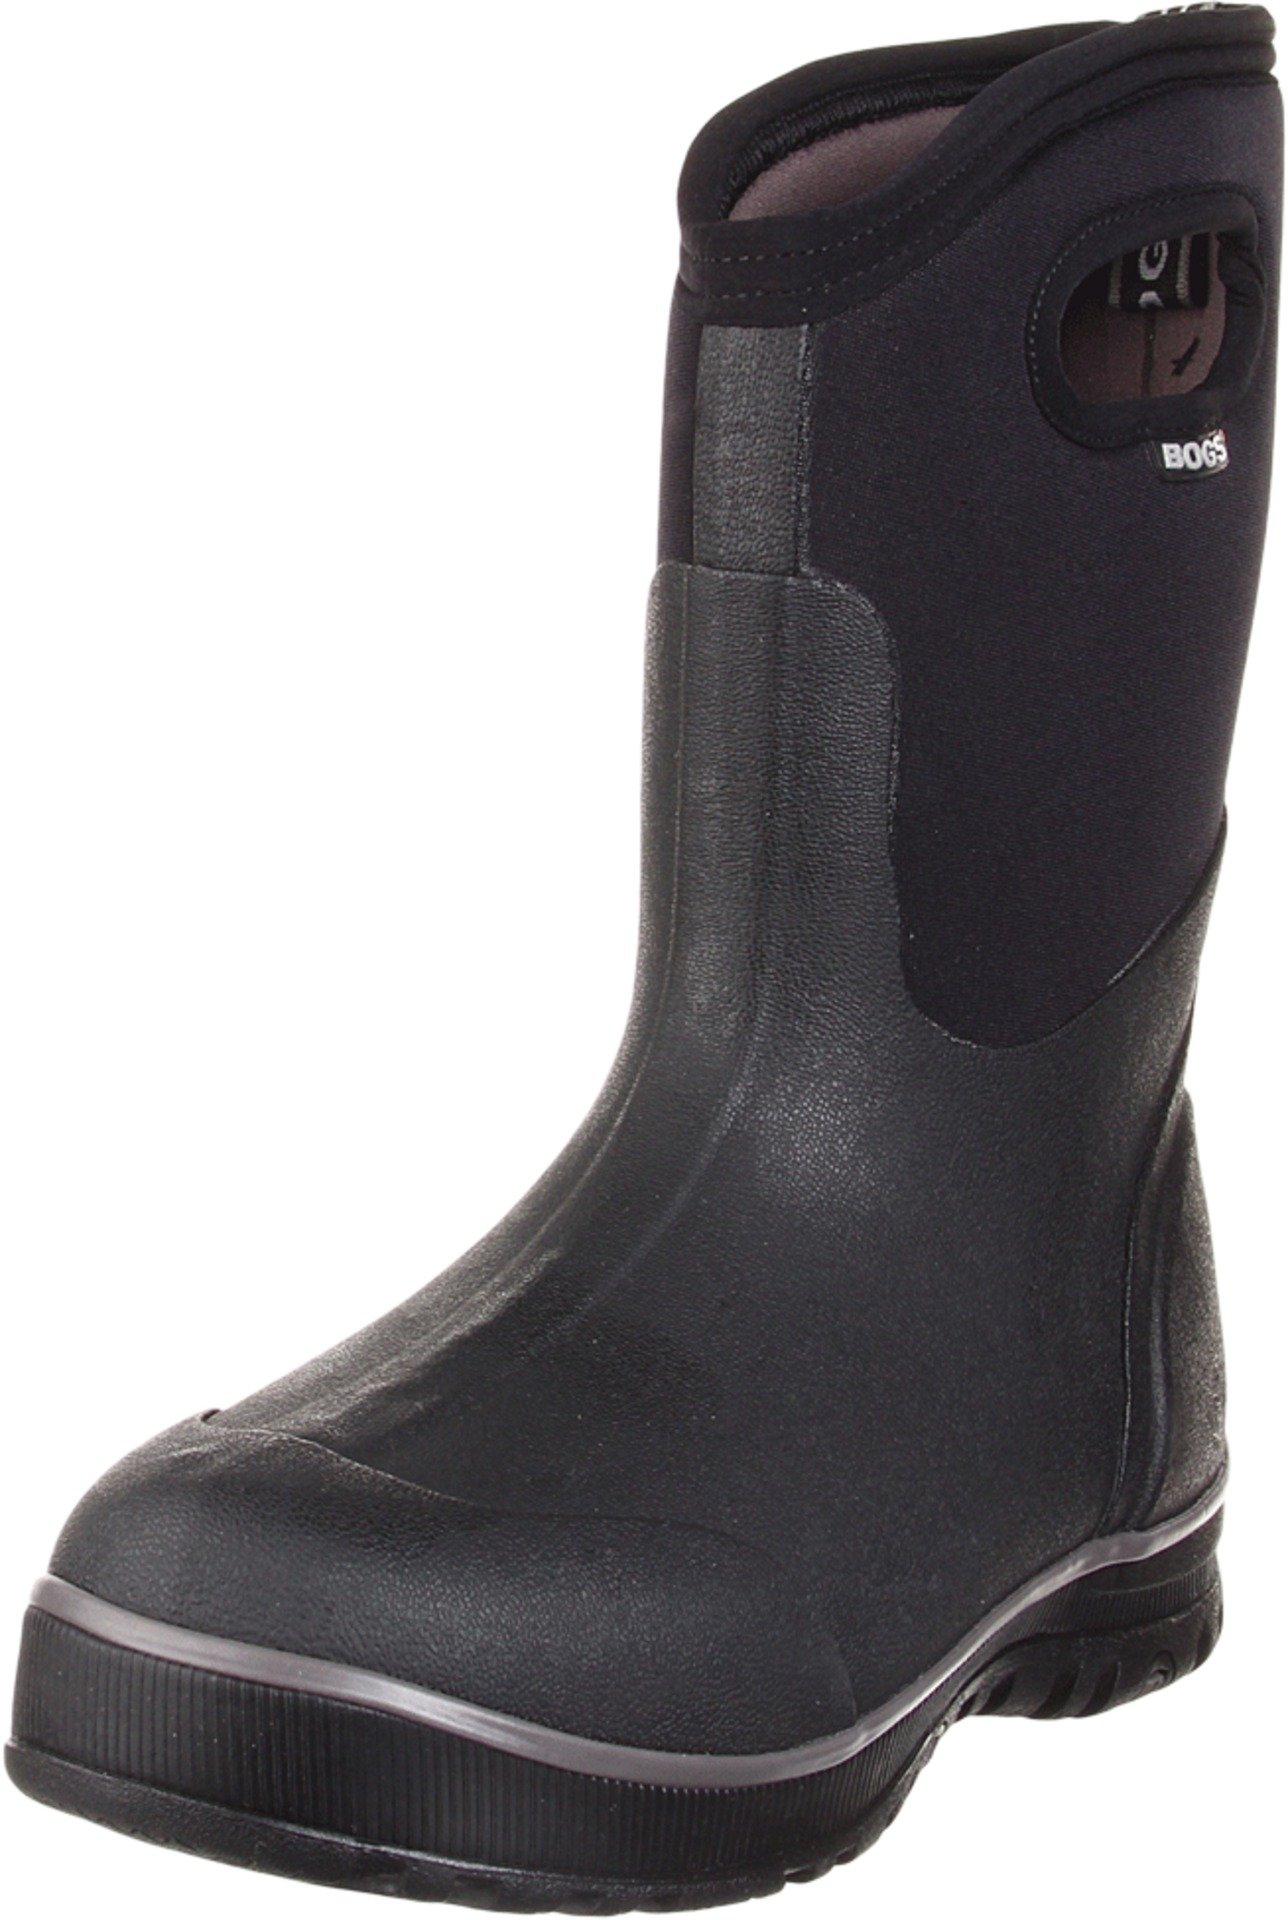 Bogs Men's Ultra Mid Waterproof Insulated Rain Boot, Black,8 M US